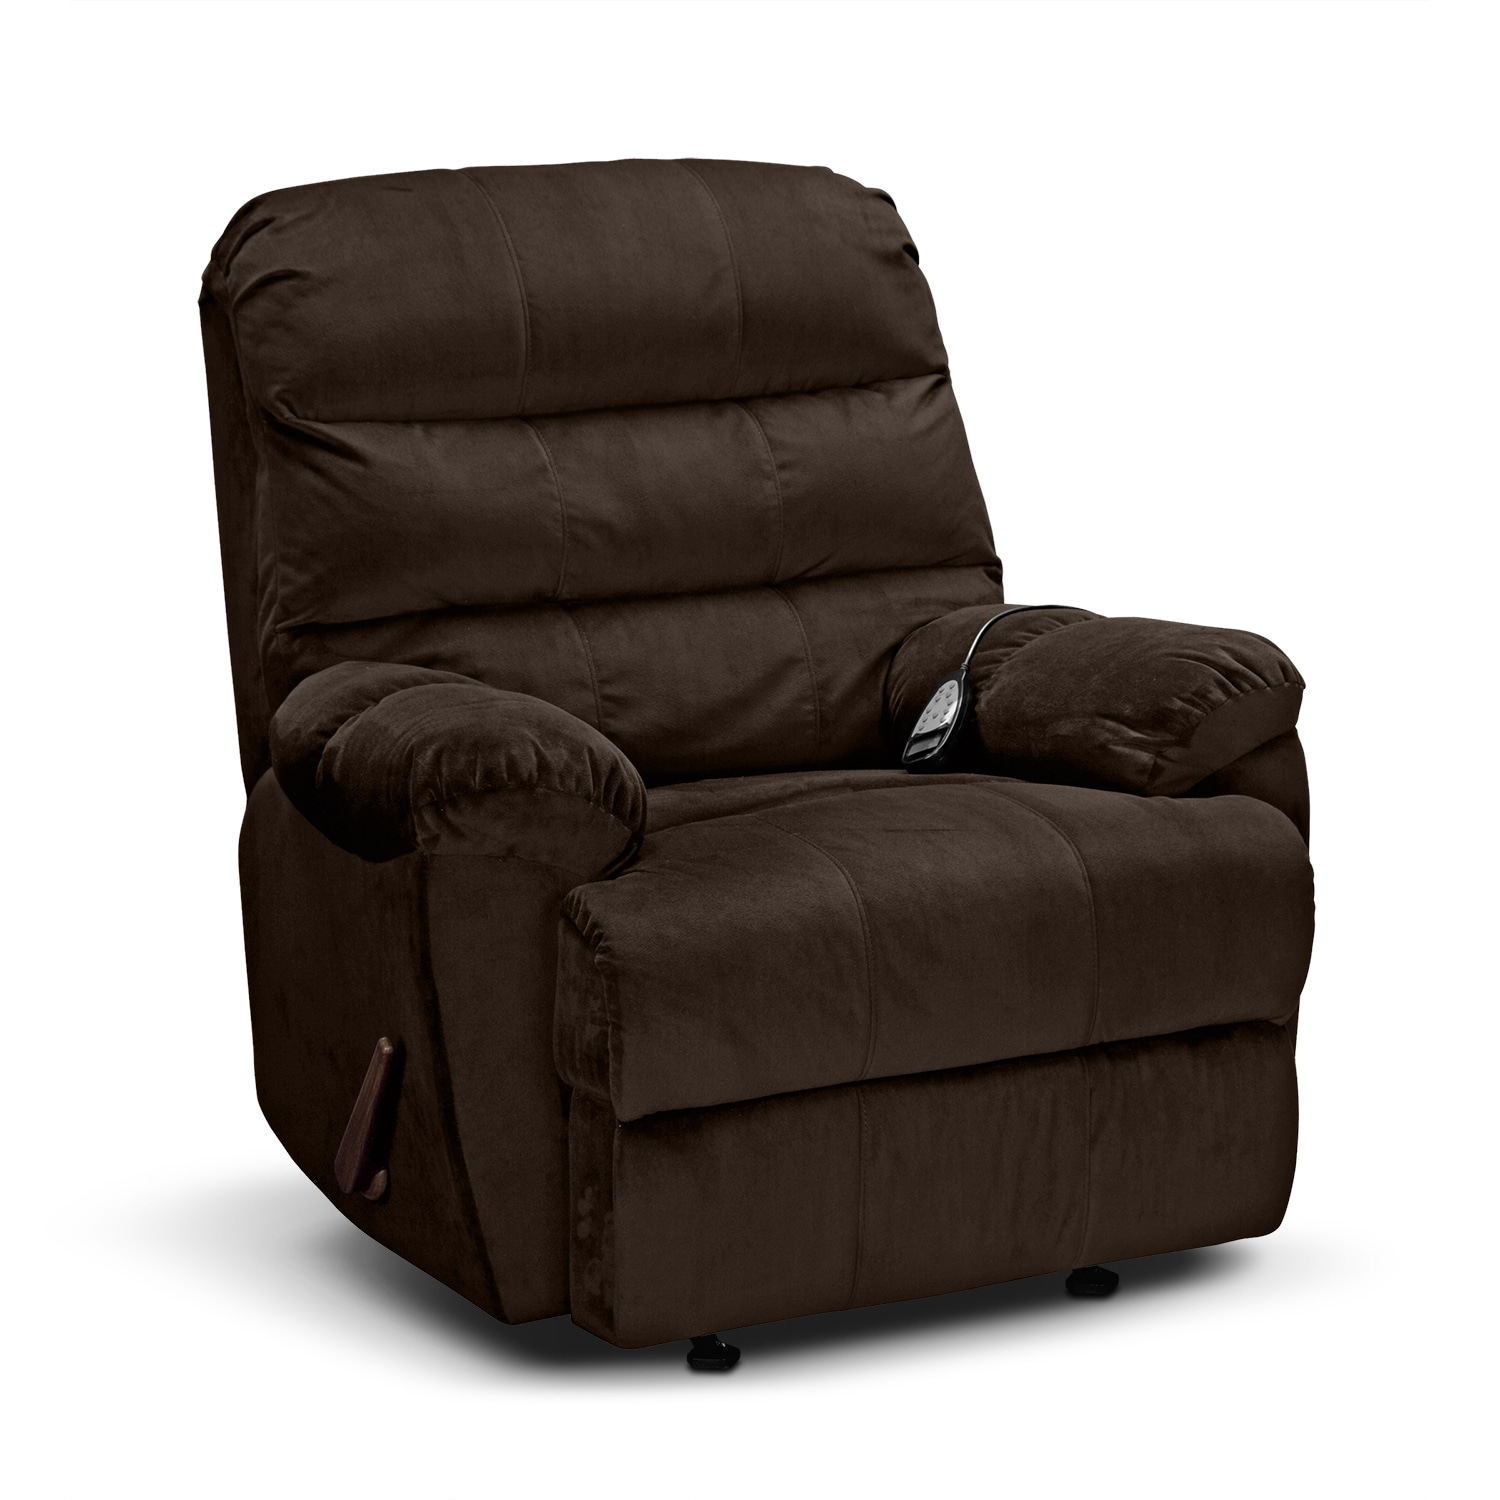 Atlantic Massage Rocker Recliner Chocolate Value City